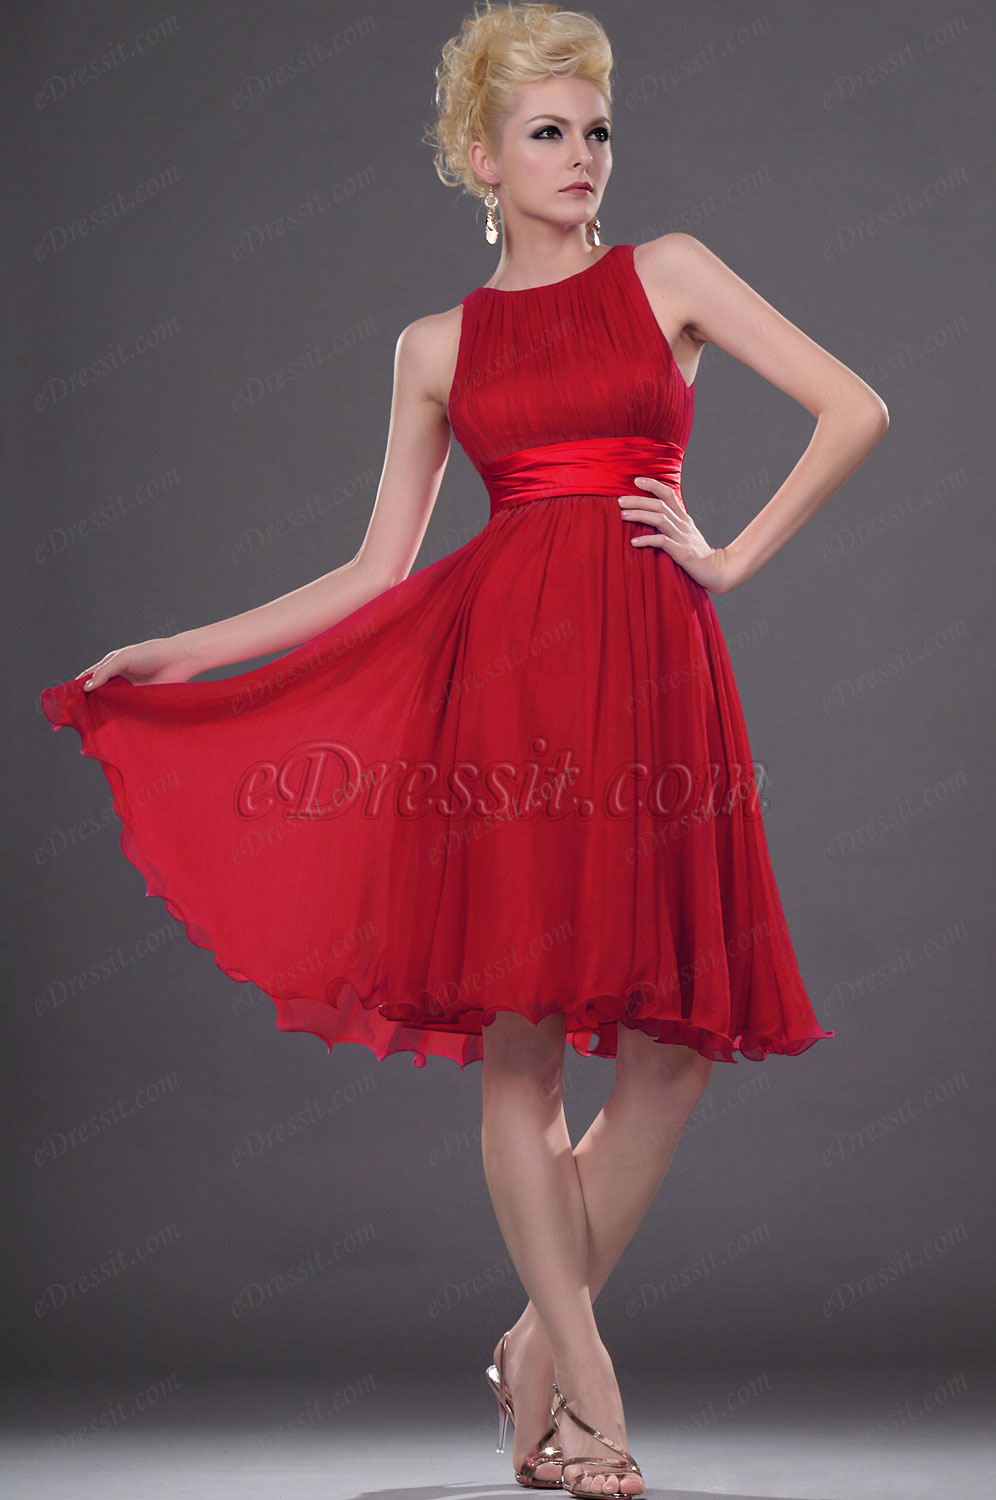 Clearance Sale ! eDressit Red Cocktail Dress--Size UK10 (04111712b)